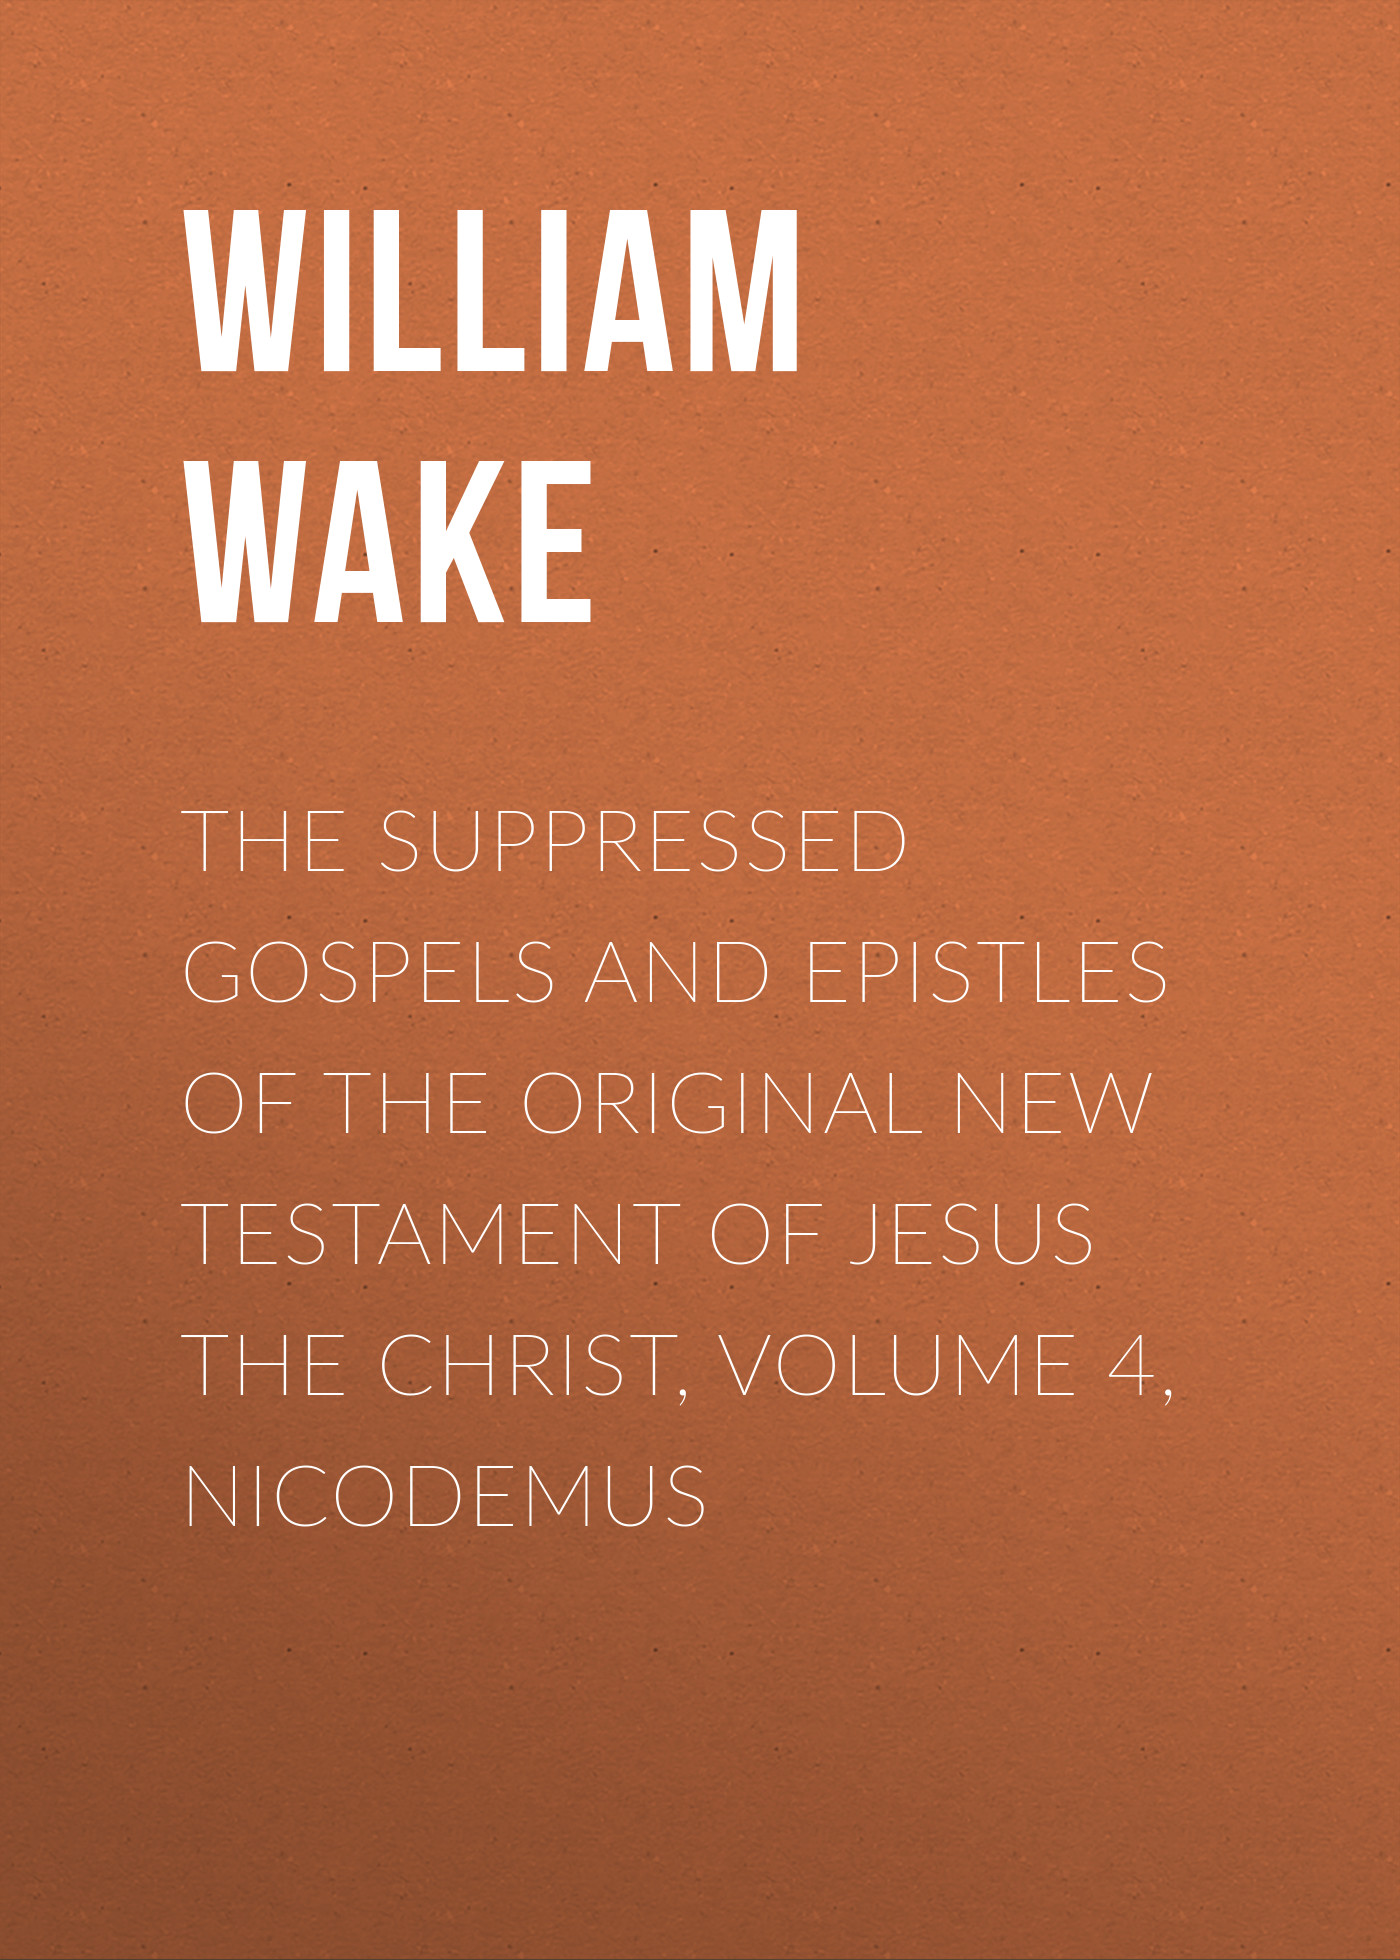 William Wake The suppressed Gospels and Epistles of the original New Testament of Jesus the Christ, Volume 4, Nicodemus arnaud bernard the gospels